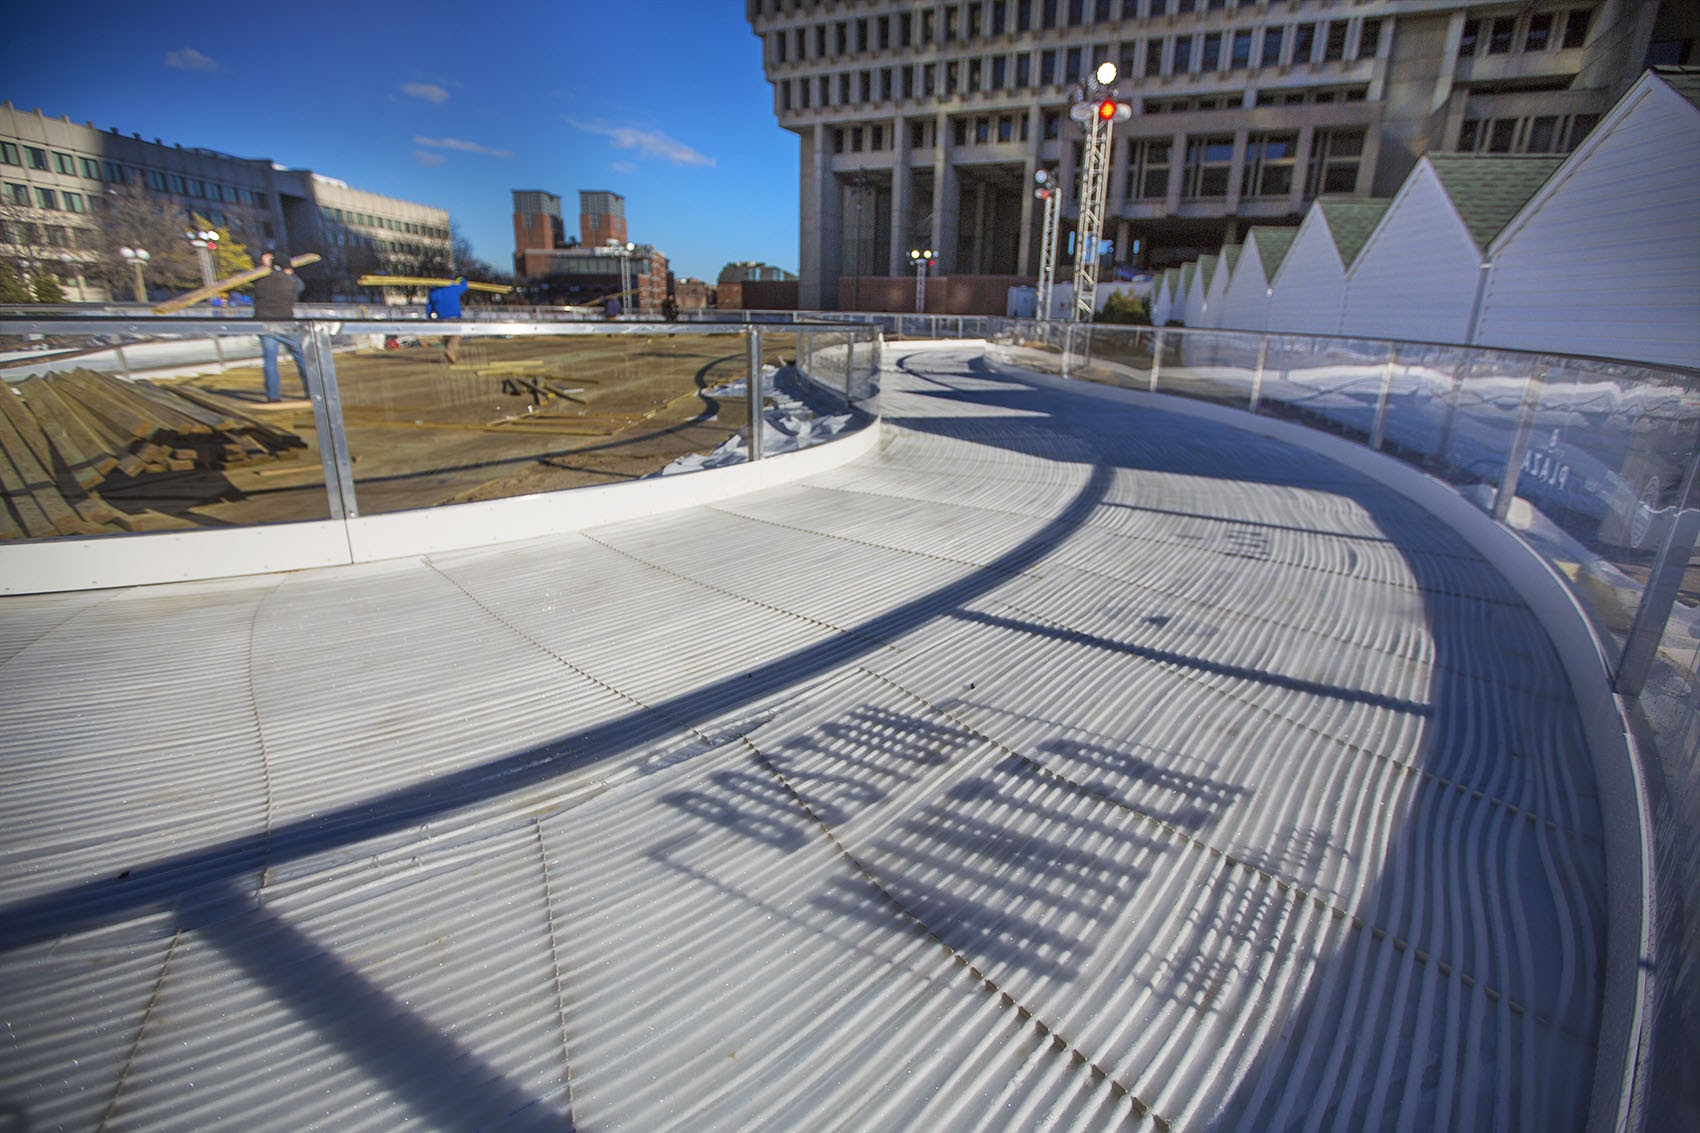 """Workers finish putting together the skating rink for """"Boston Winter"""" at City Hall Plaza last year. (Jesse Costa/WBUR)"""